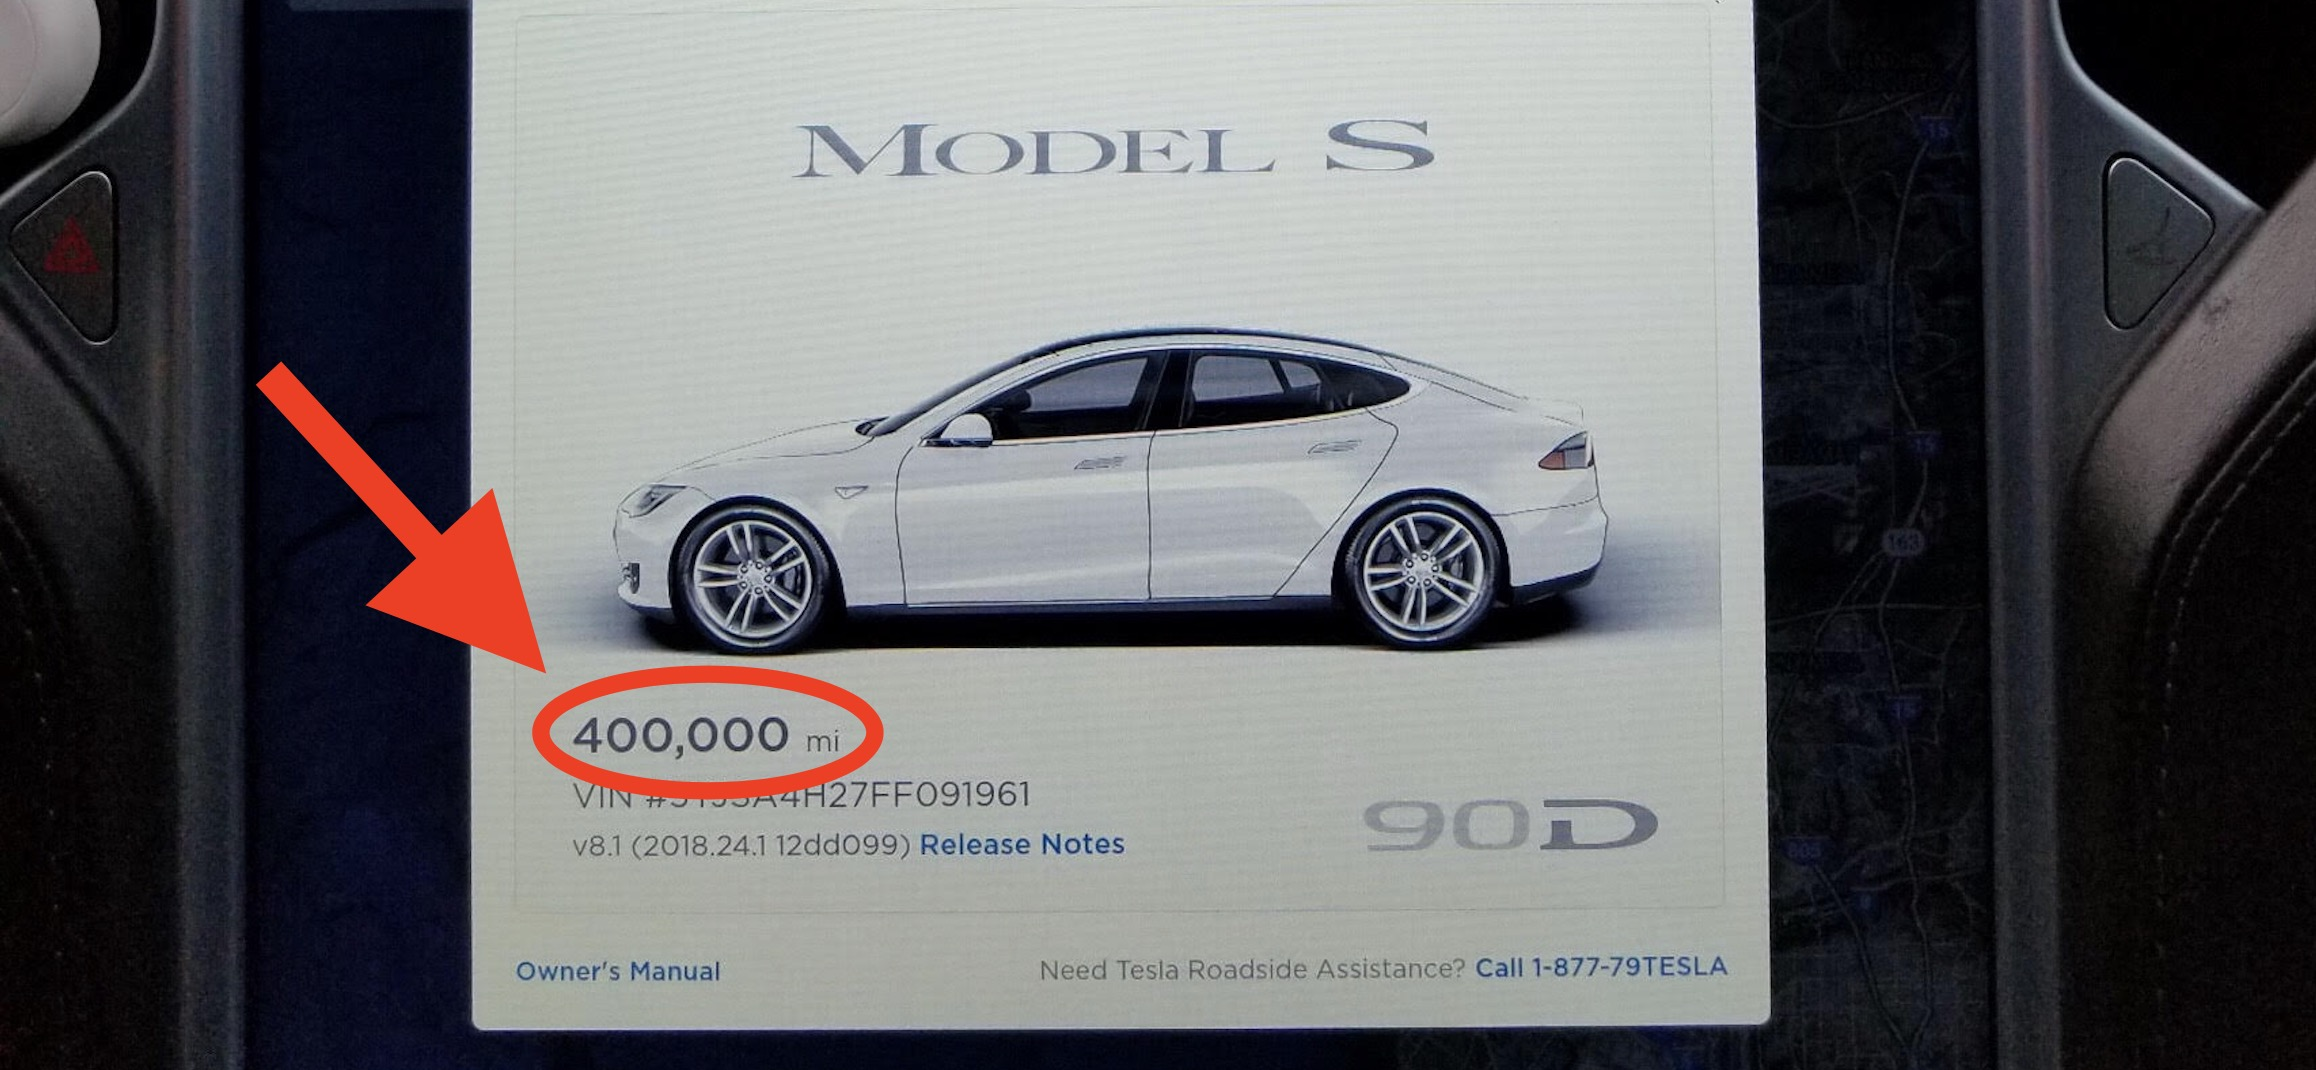 Here's how a Tesla Model S holds up after 400,000 miles in 3 years